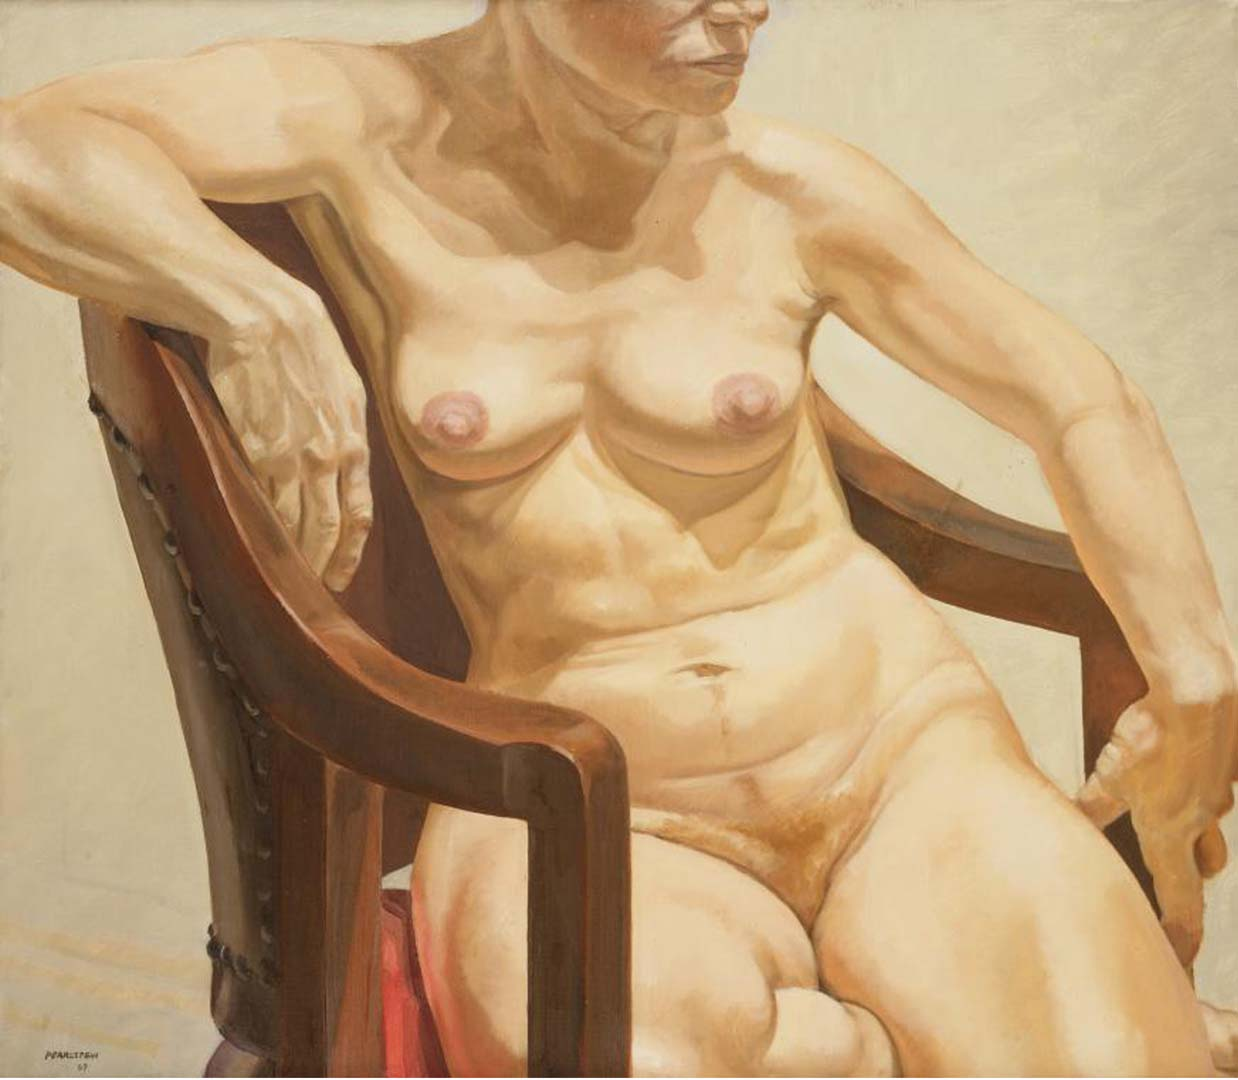 1967 Model Seated on Chair Oil on Canvas 26 x 30